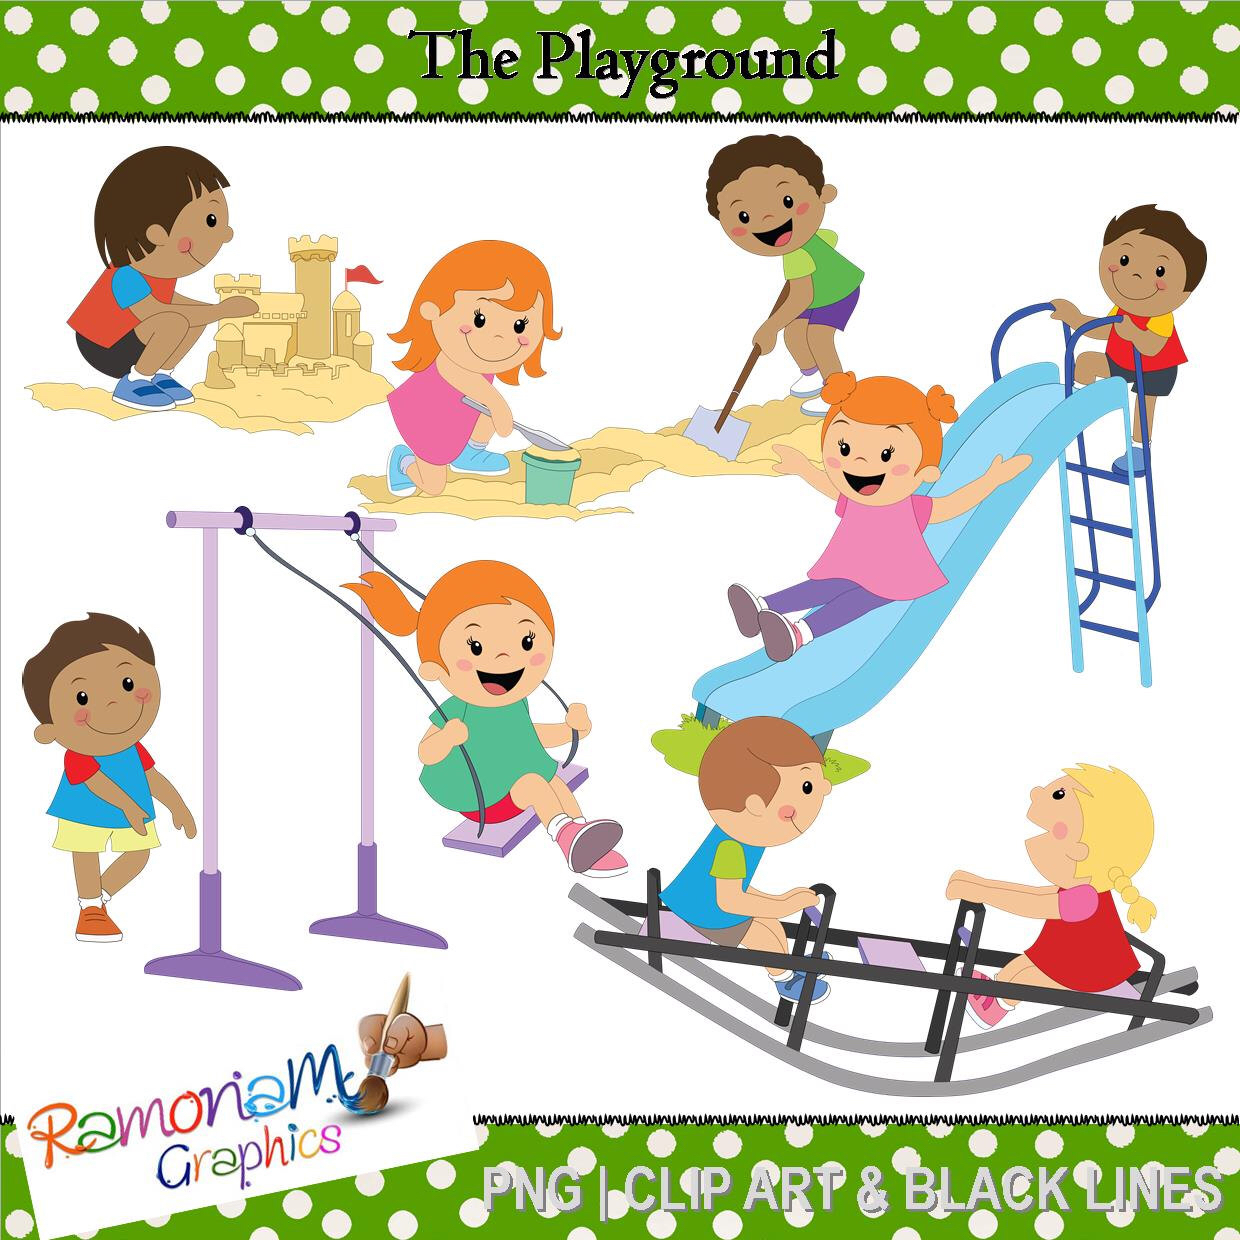 Playground Clip art by RamonaMClipArt on Etsy (null).